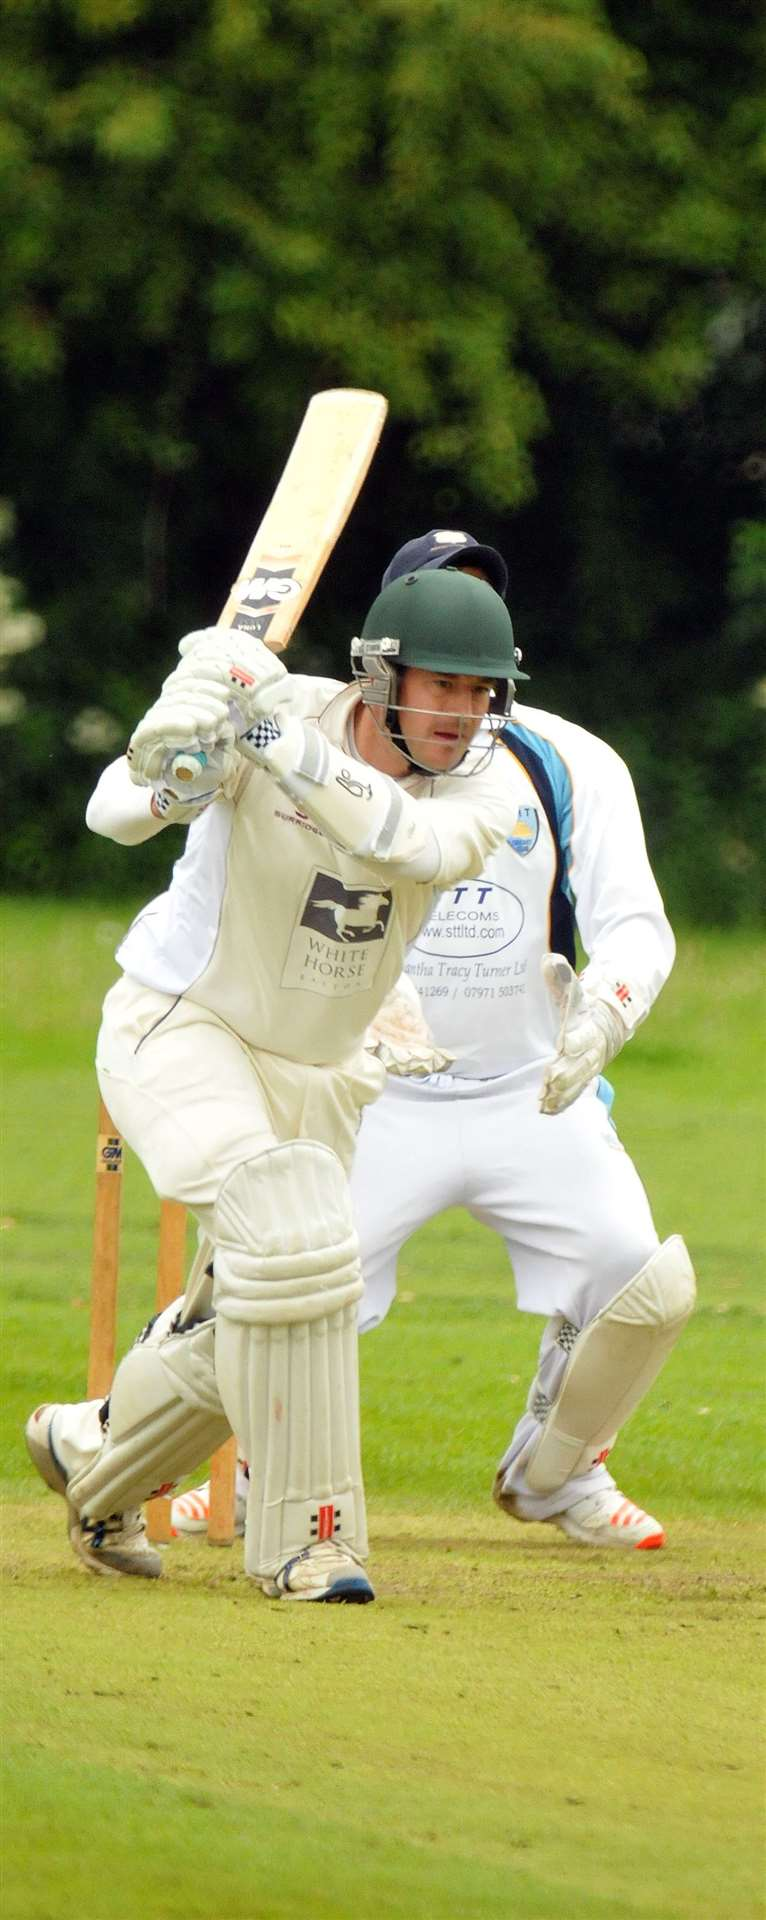 James Tickler made 26 for Bourne 2nds. (10260567)